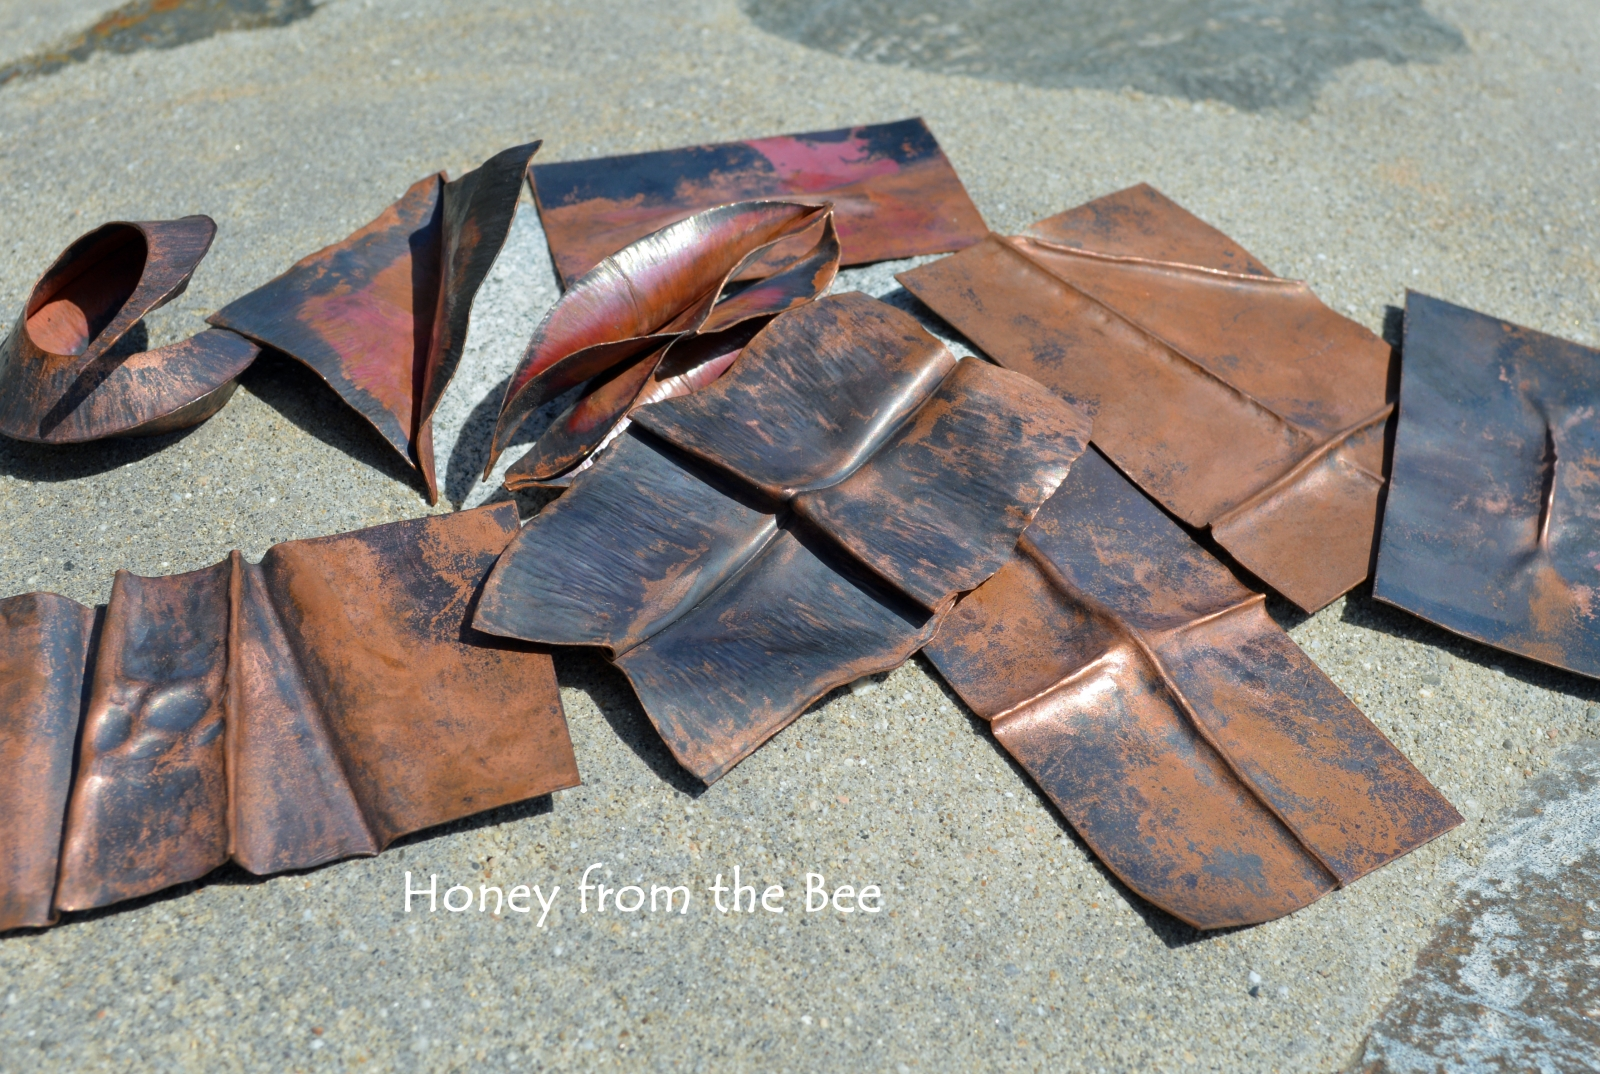 Foldformed copper samples by Honey from the Bee